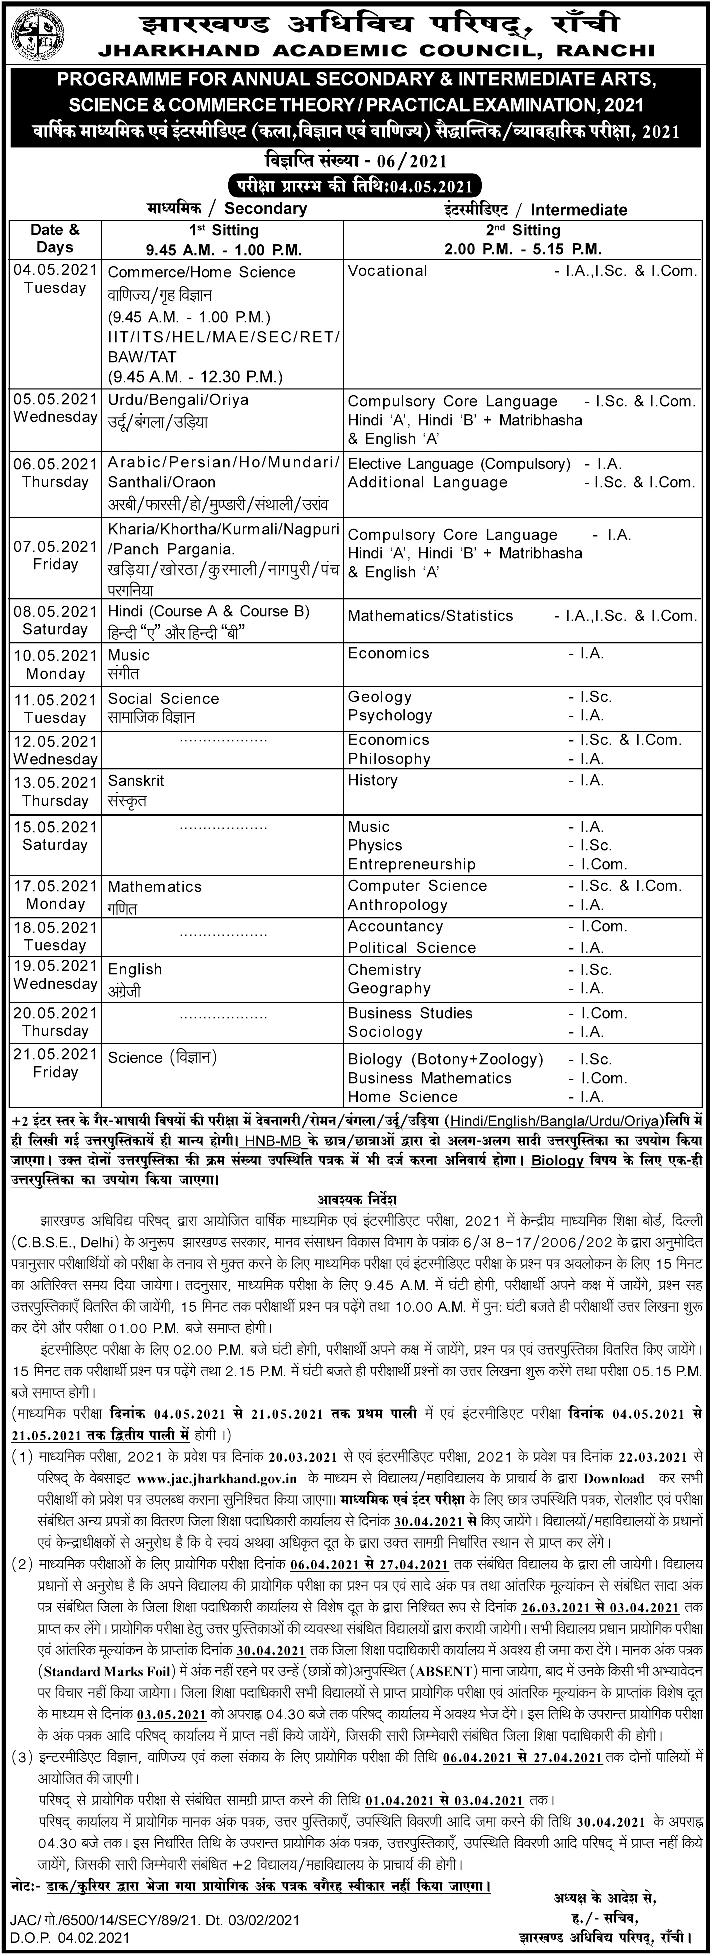 JAC 10th & 12th Exam Schedule 2021